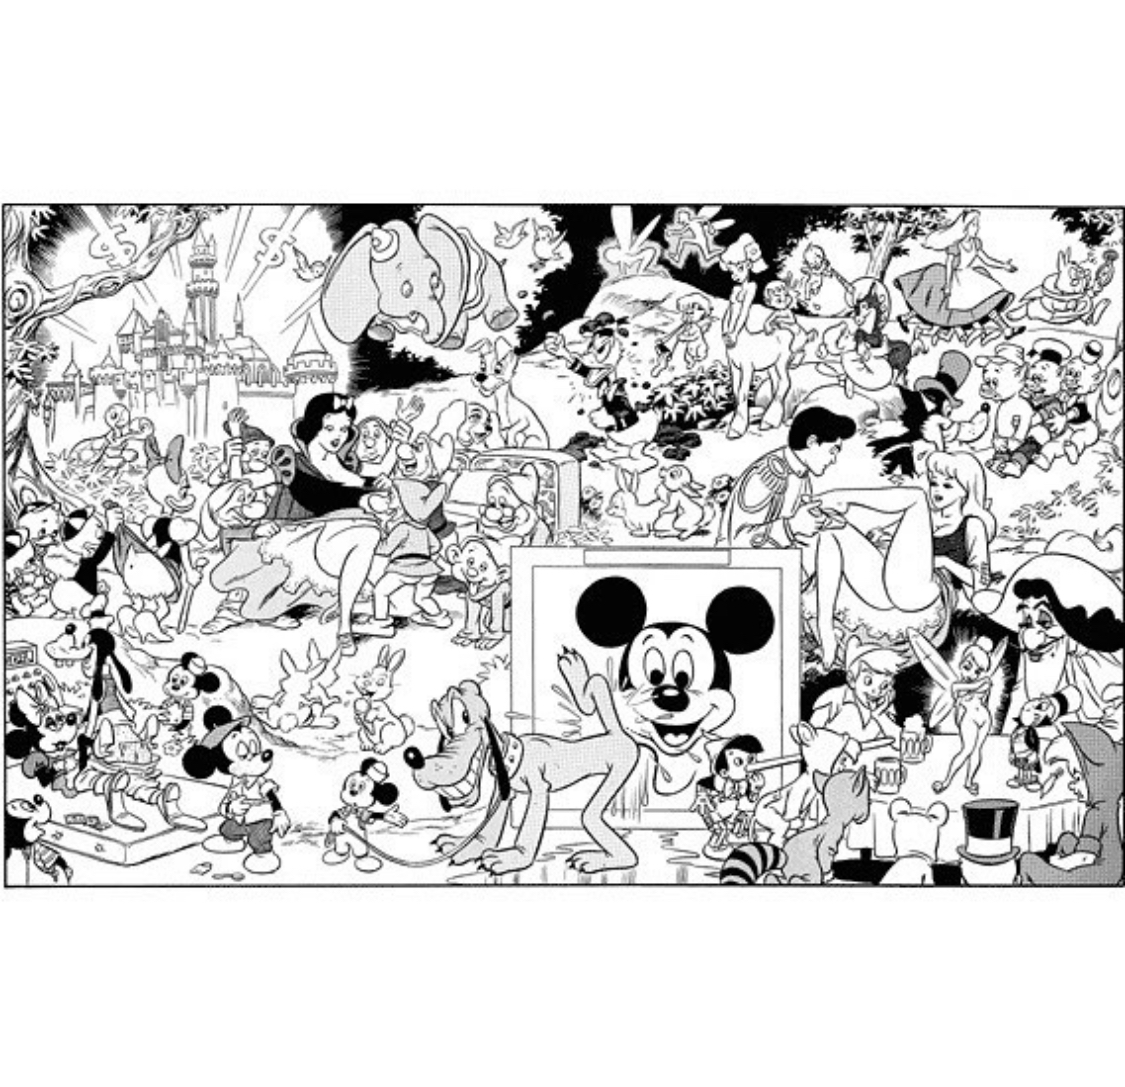 Disney drawing done by Paul Krassner for The Realist magazine